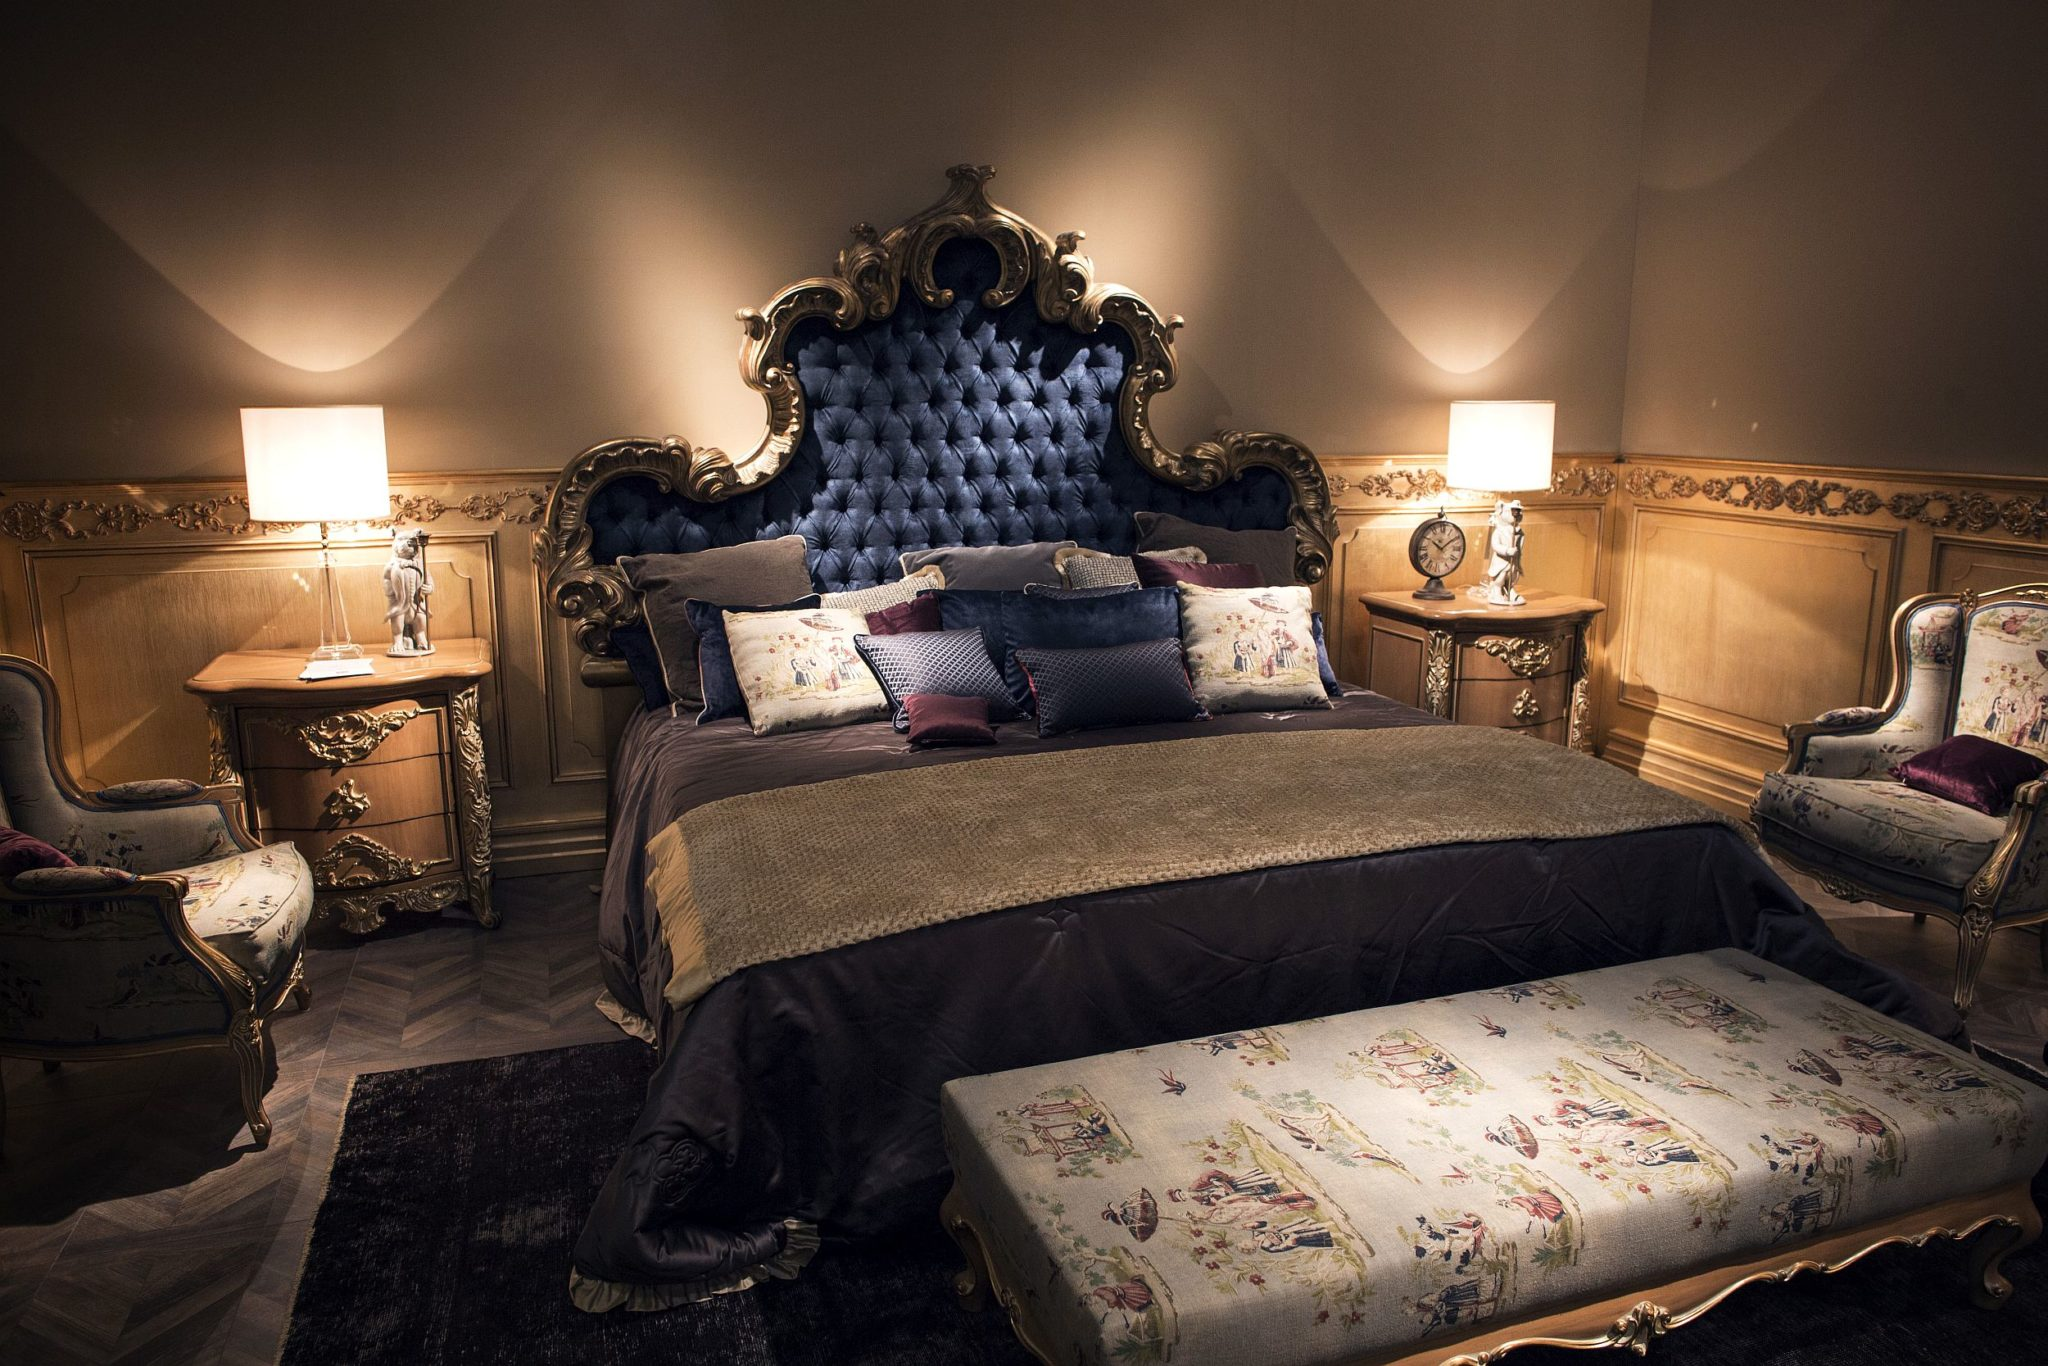 Ornate-tufted-headboard-with-gold-fretwork-brings-classic-charm-to-this-bedroom-collection-from-Silik